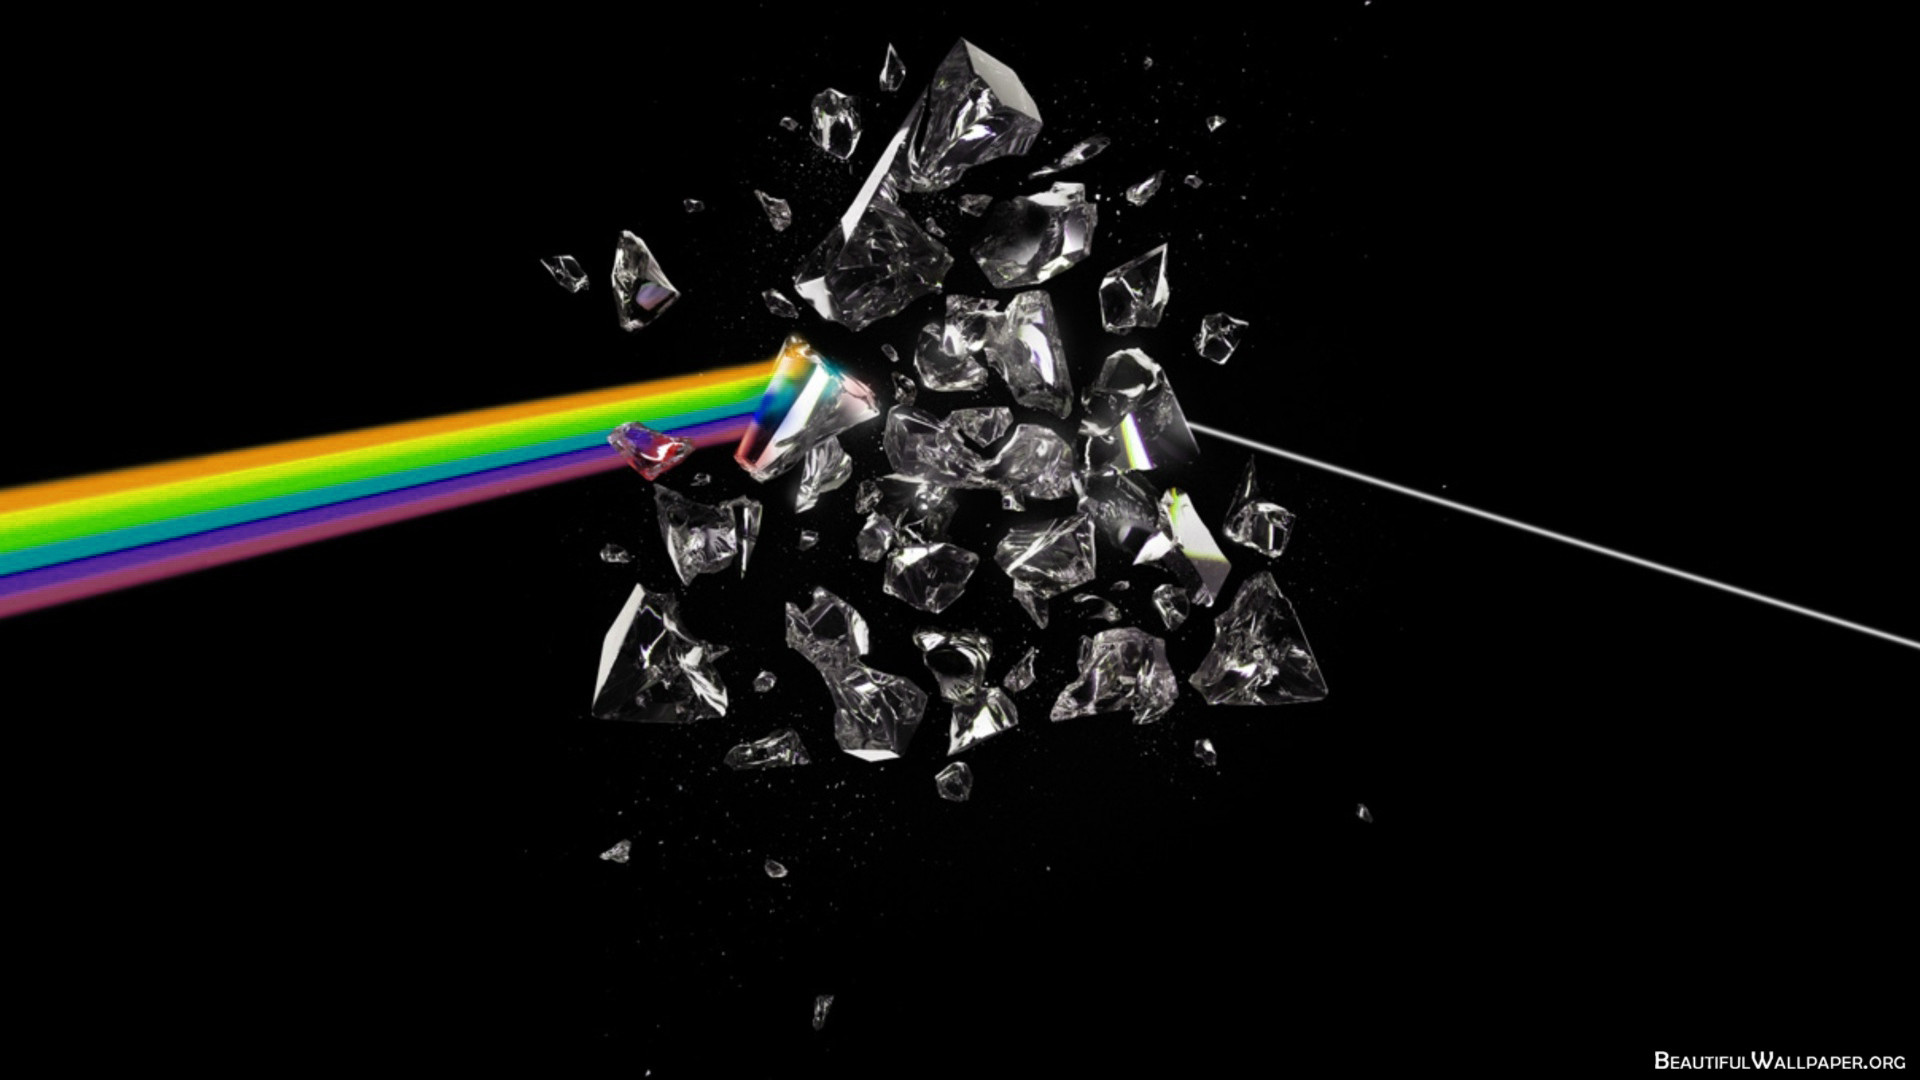 Pink Floyd Album Covers Wallpaper (68+ Images